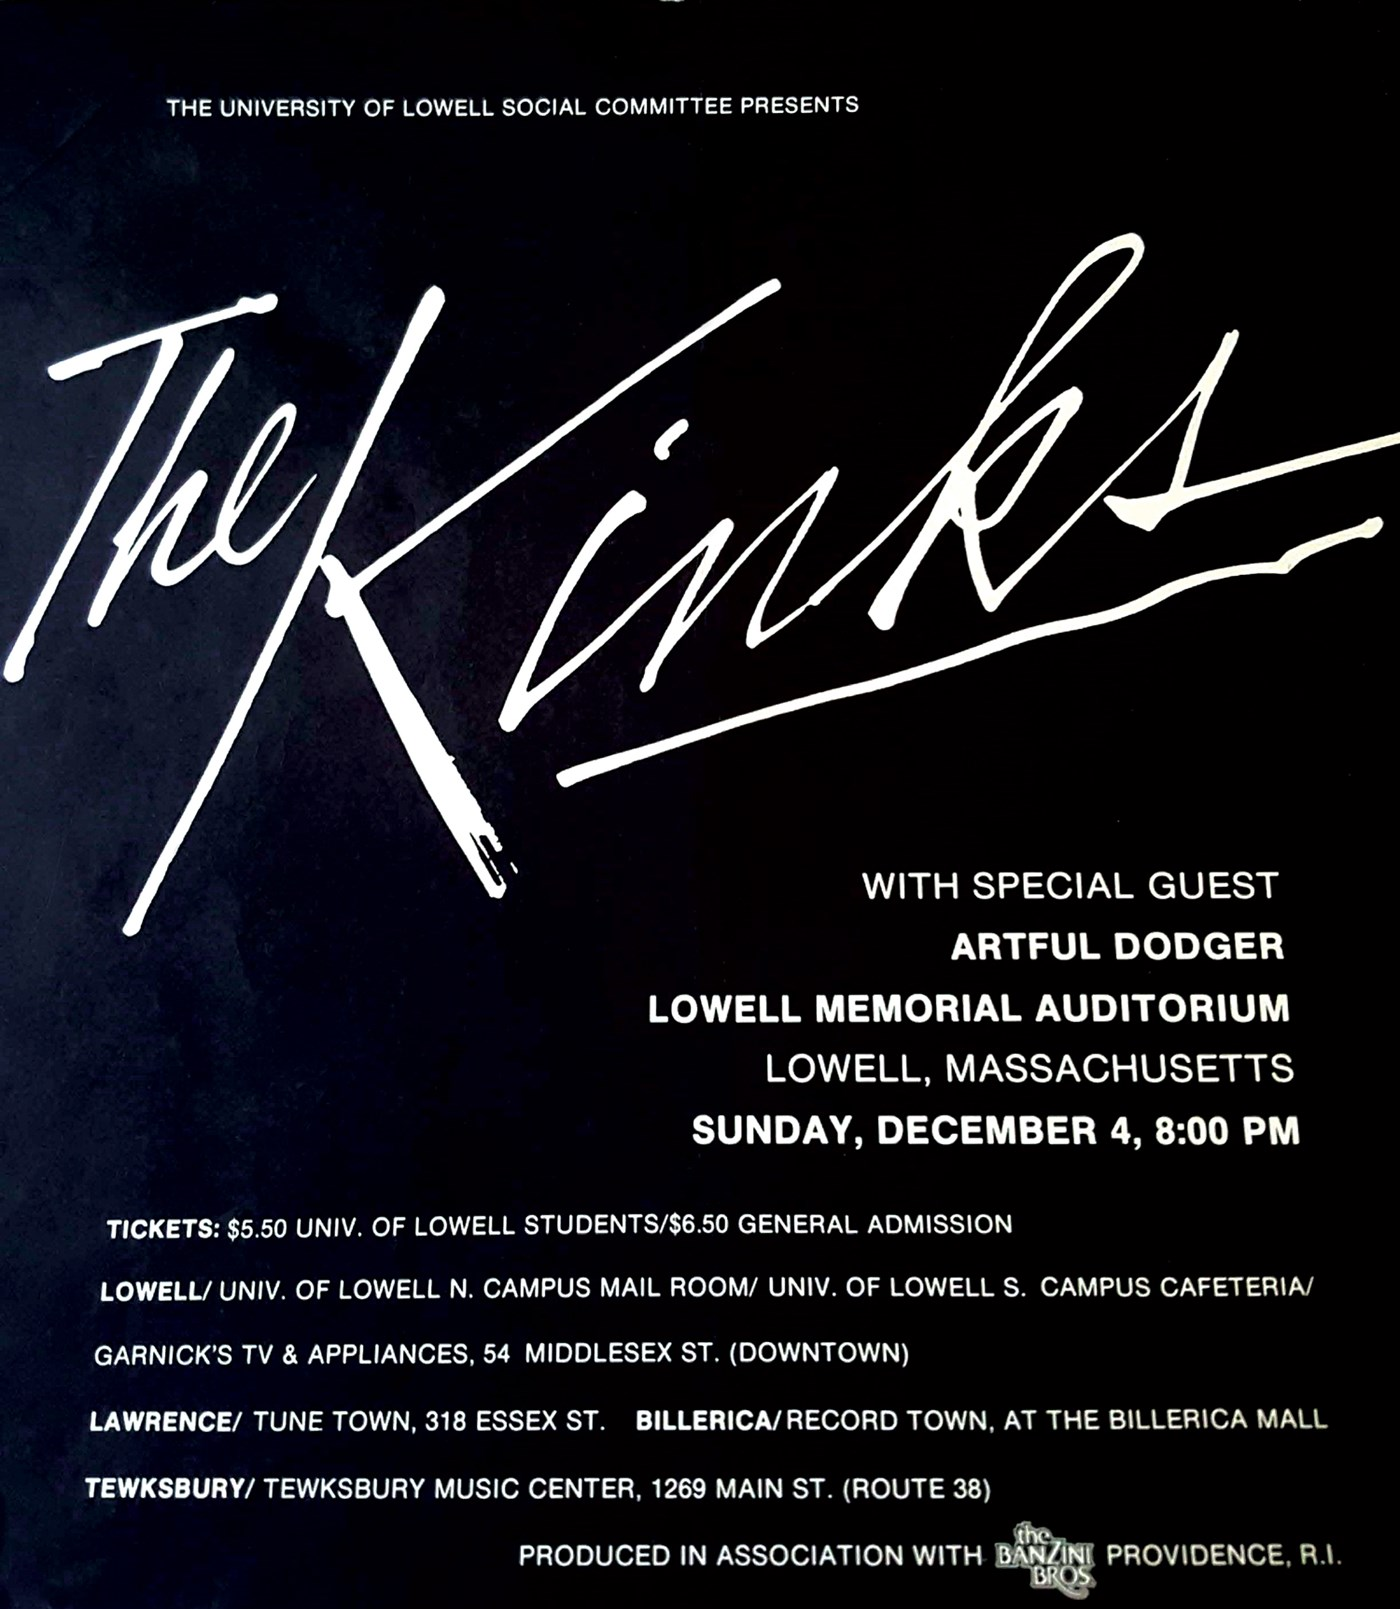 Scanned image of old Kinks poster